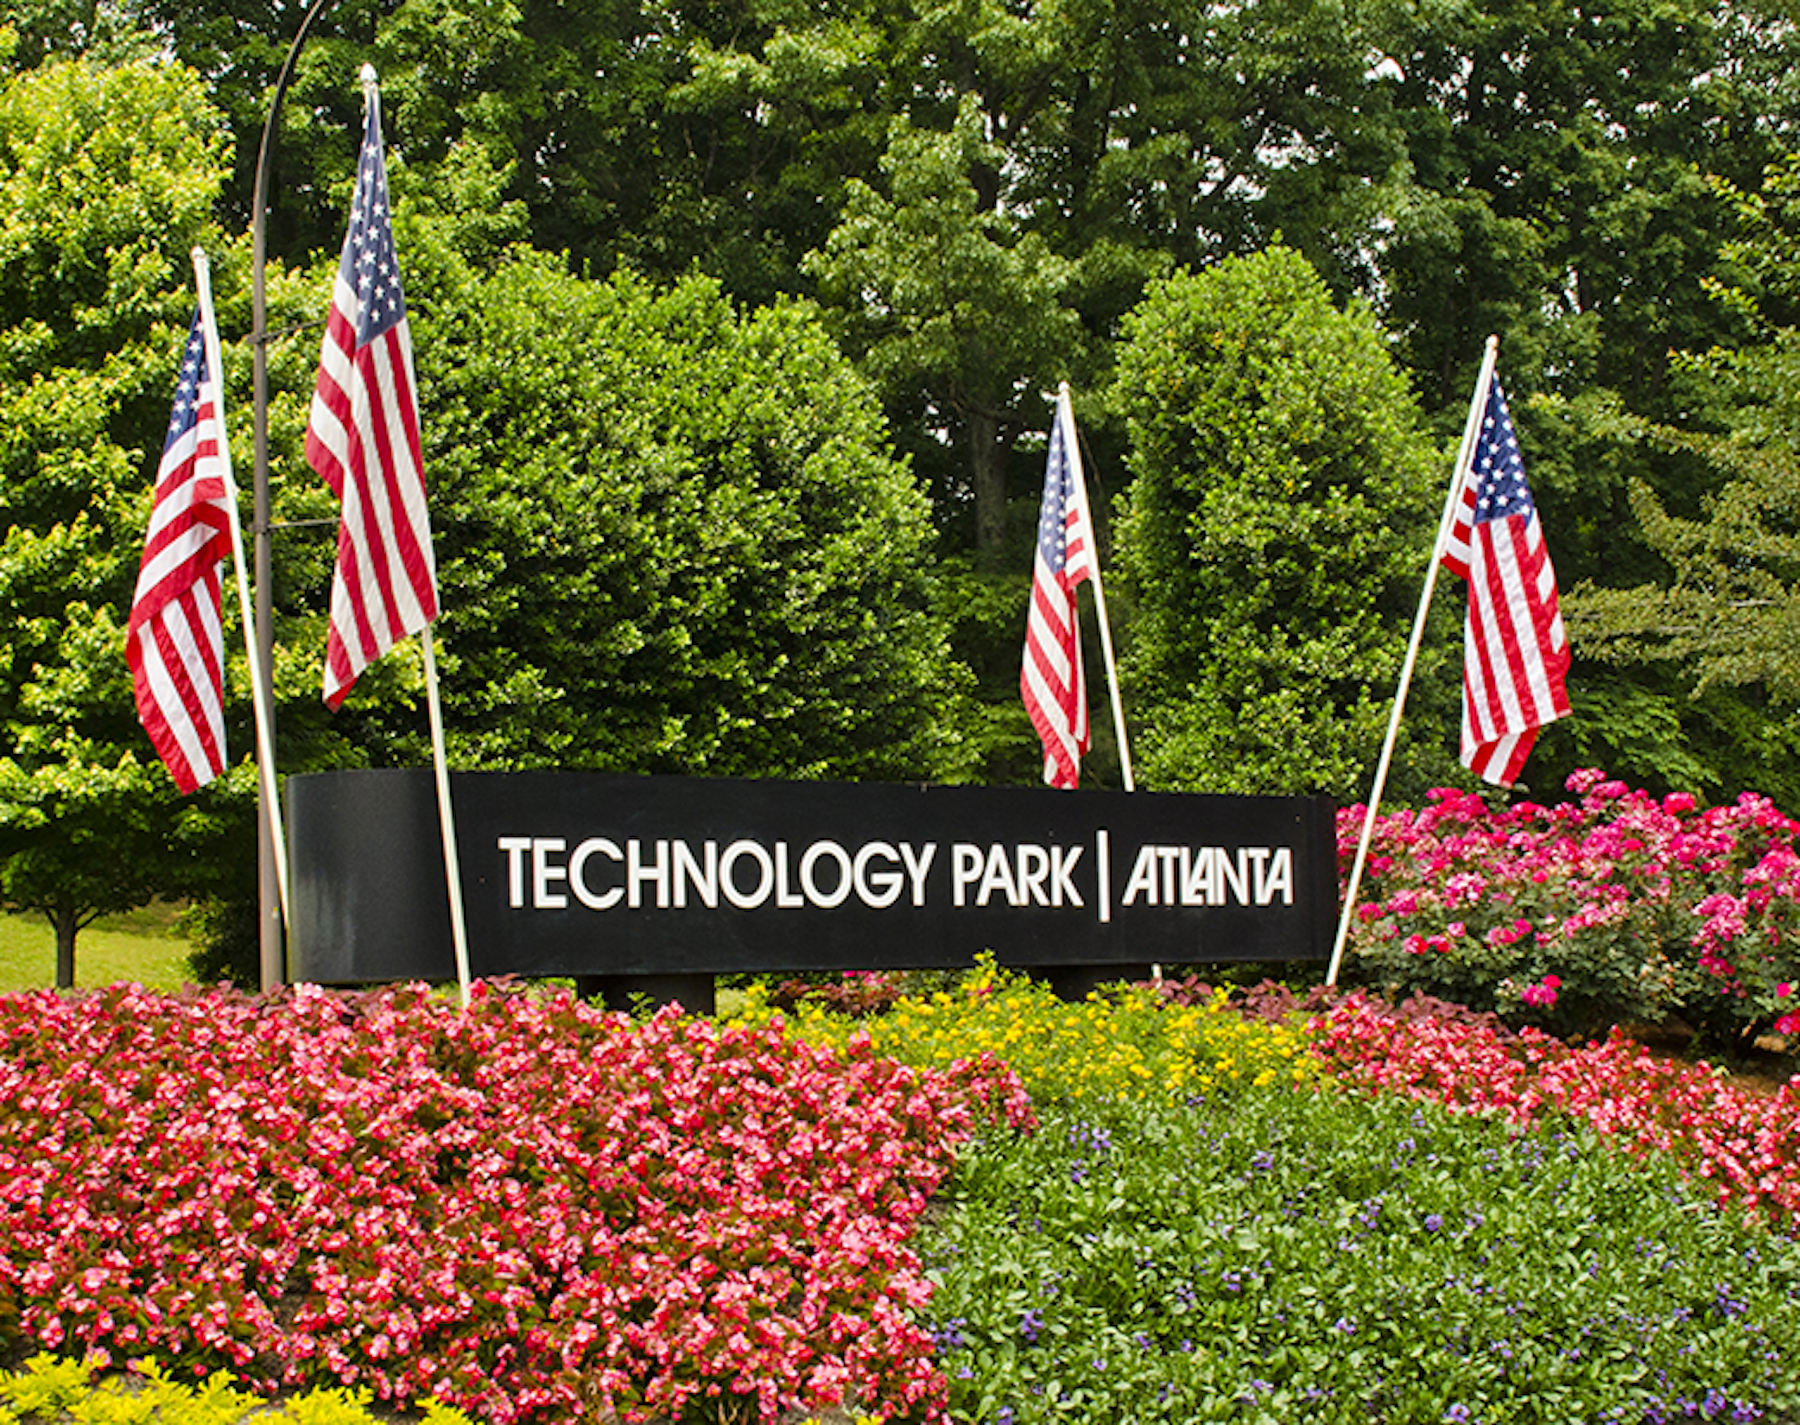 Technology Park Atlanta Landscape